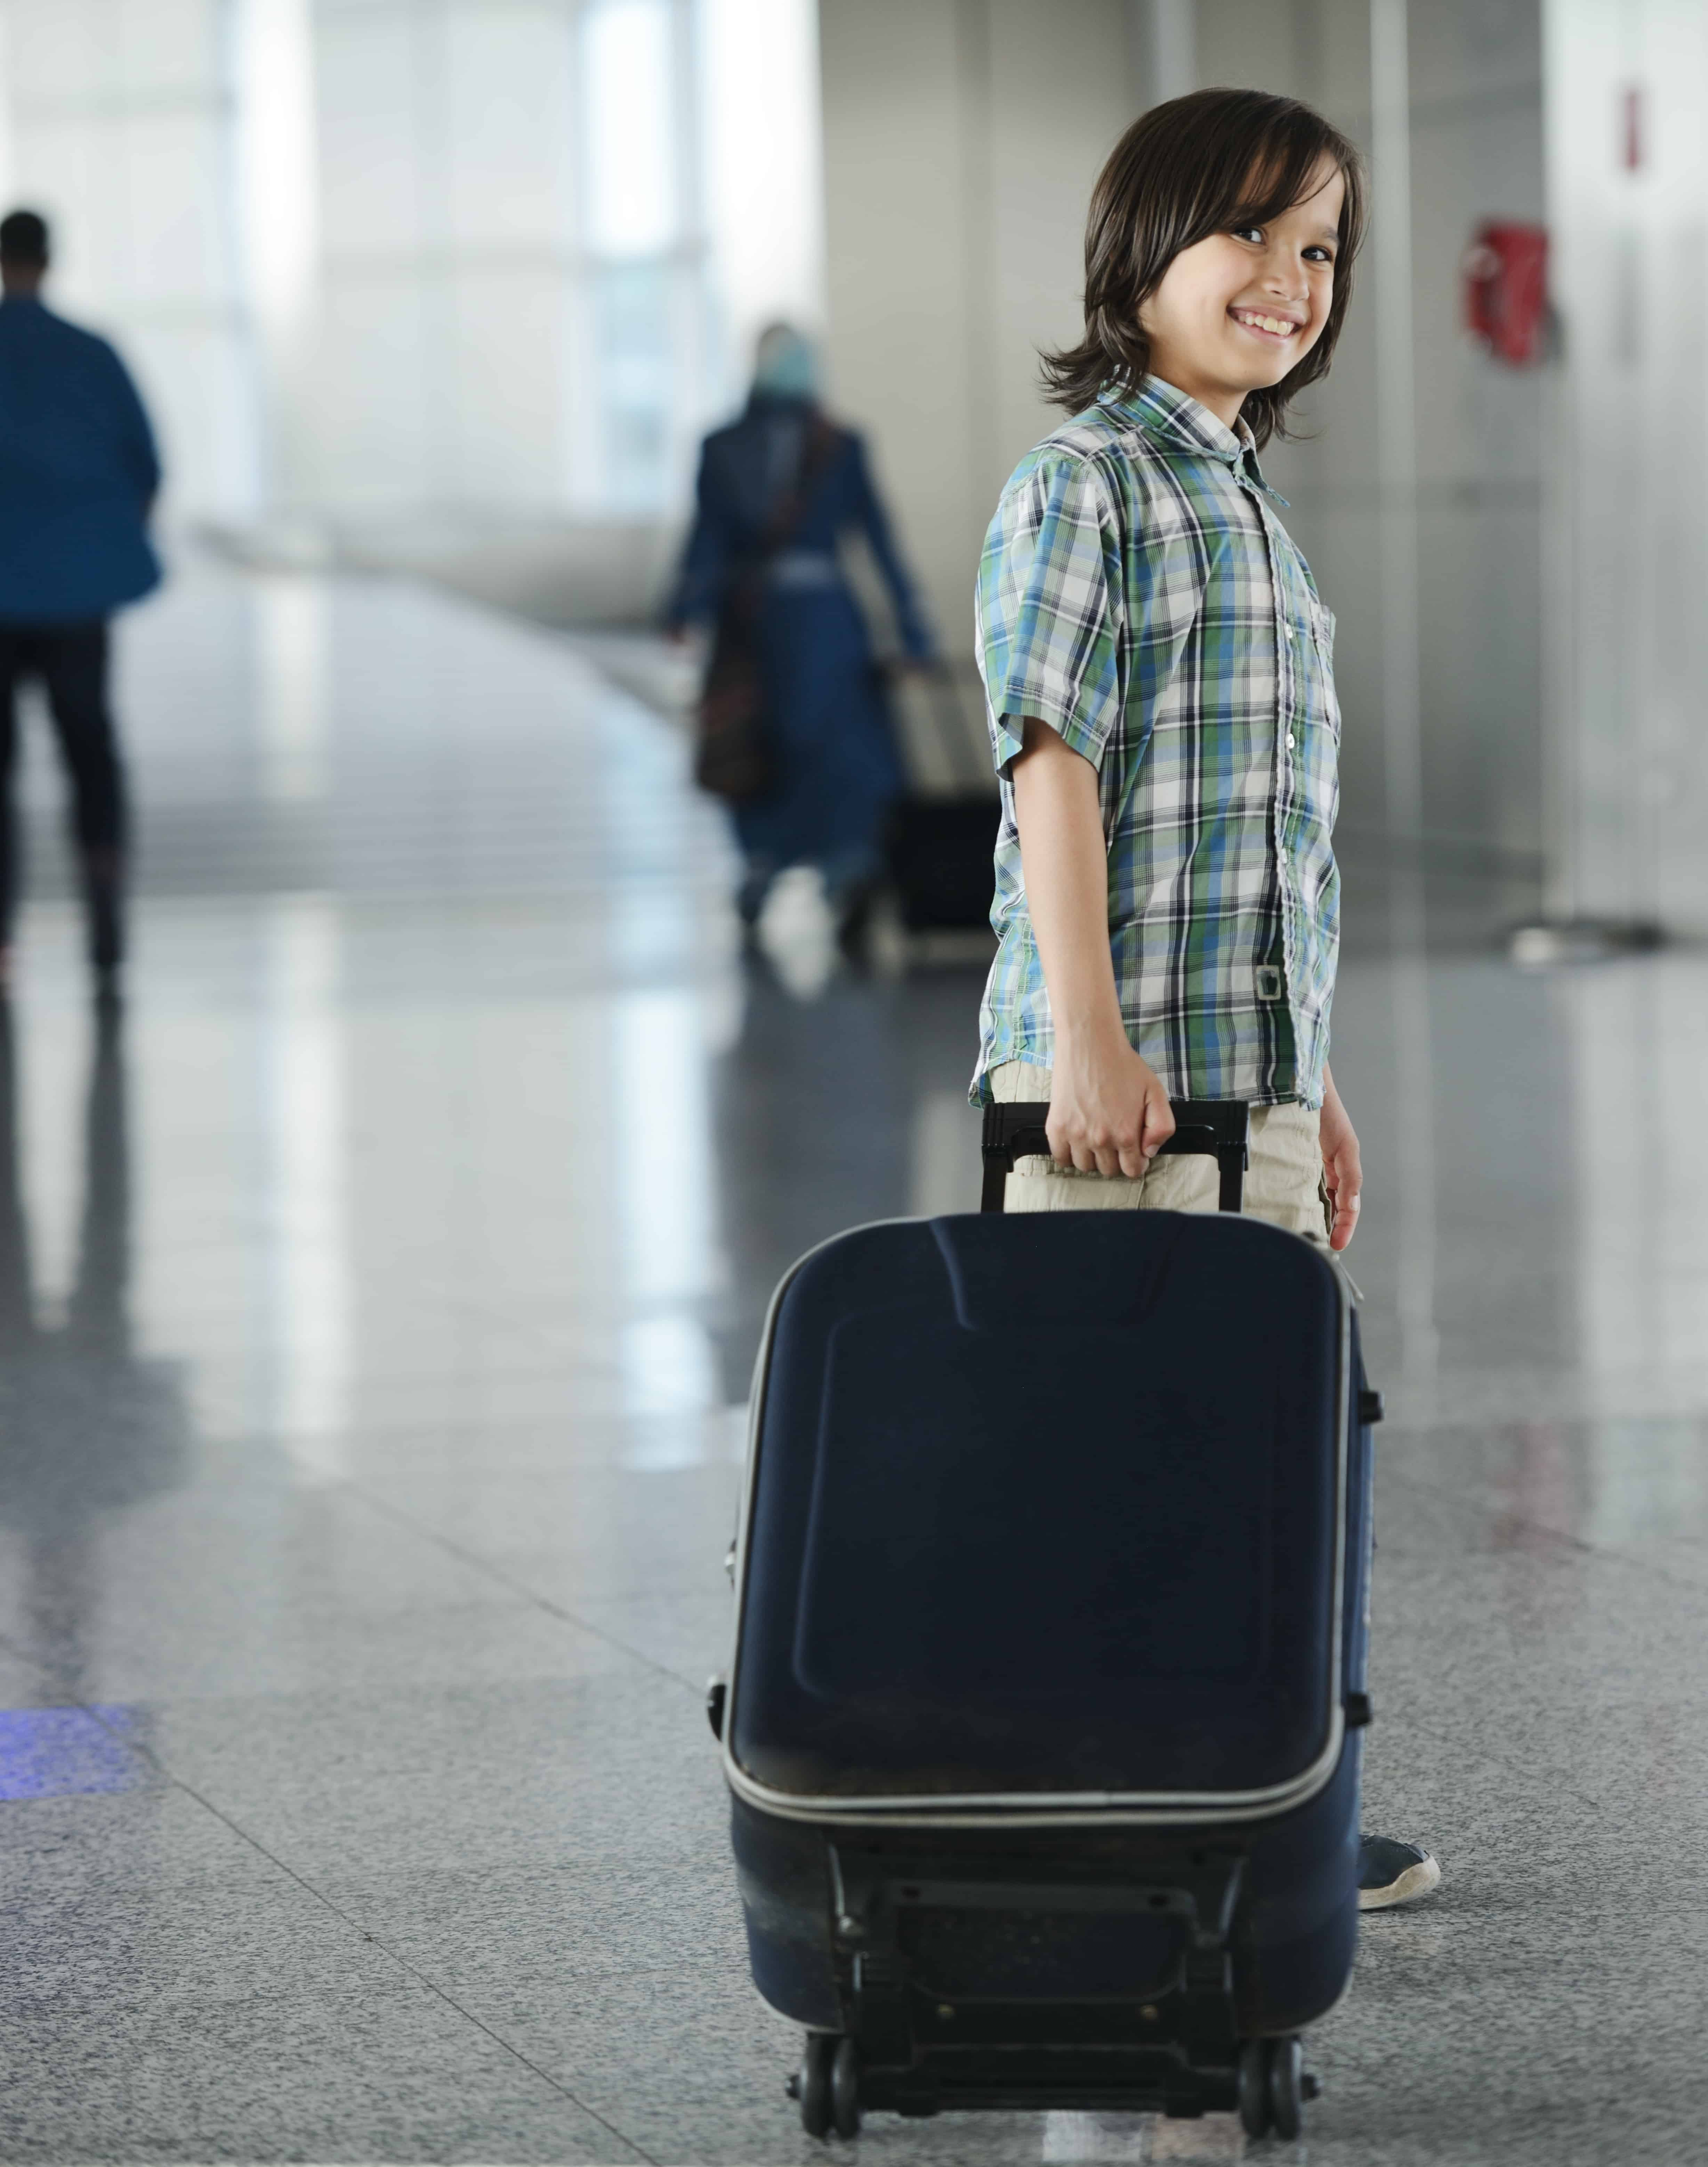 Traveling on a Budget with Kids